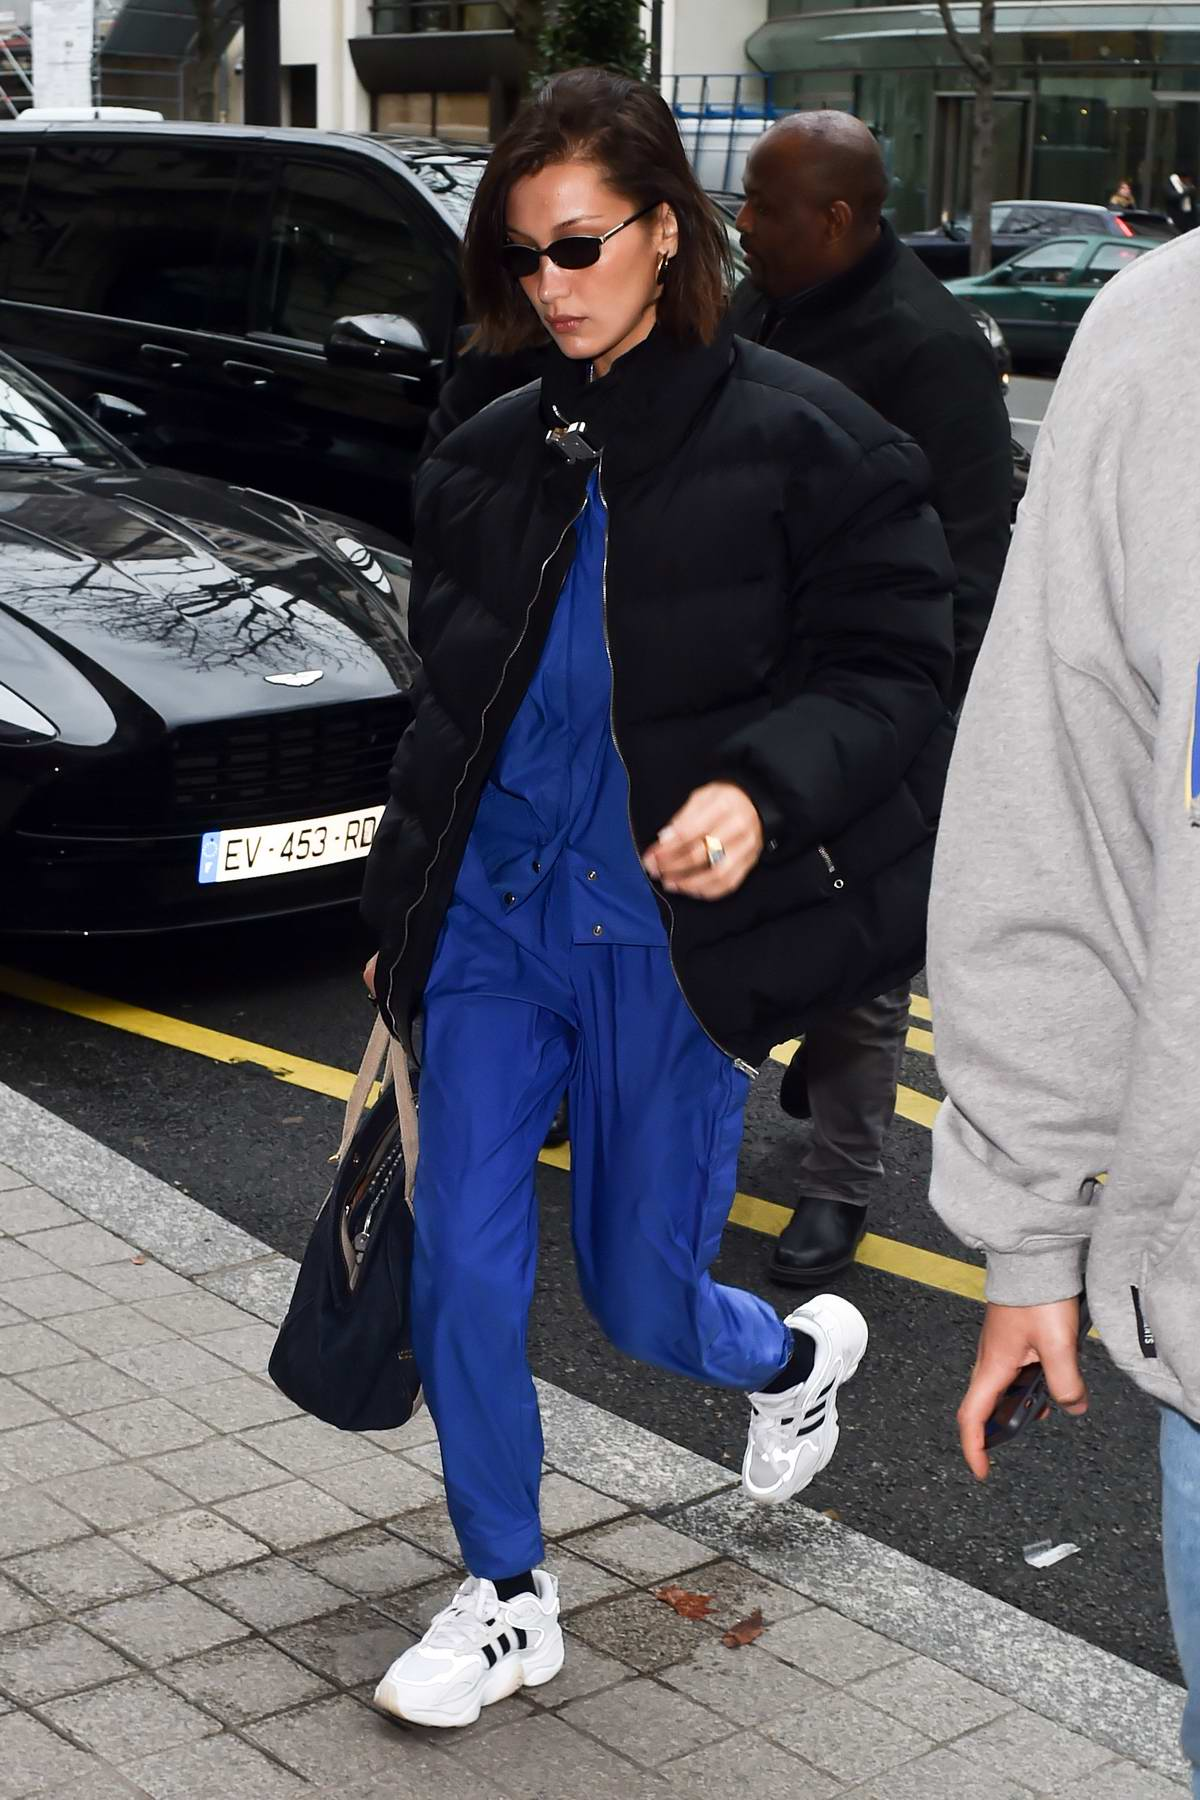 Bella Hadid rocks a blue jumpsuit with a black puffer jacket as she arrives for Paris Men's Fashion Week 2020 in Paris, France